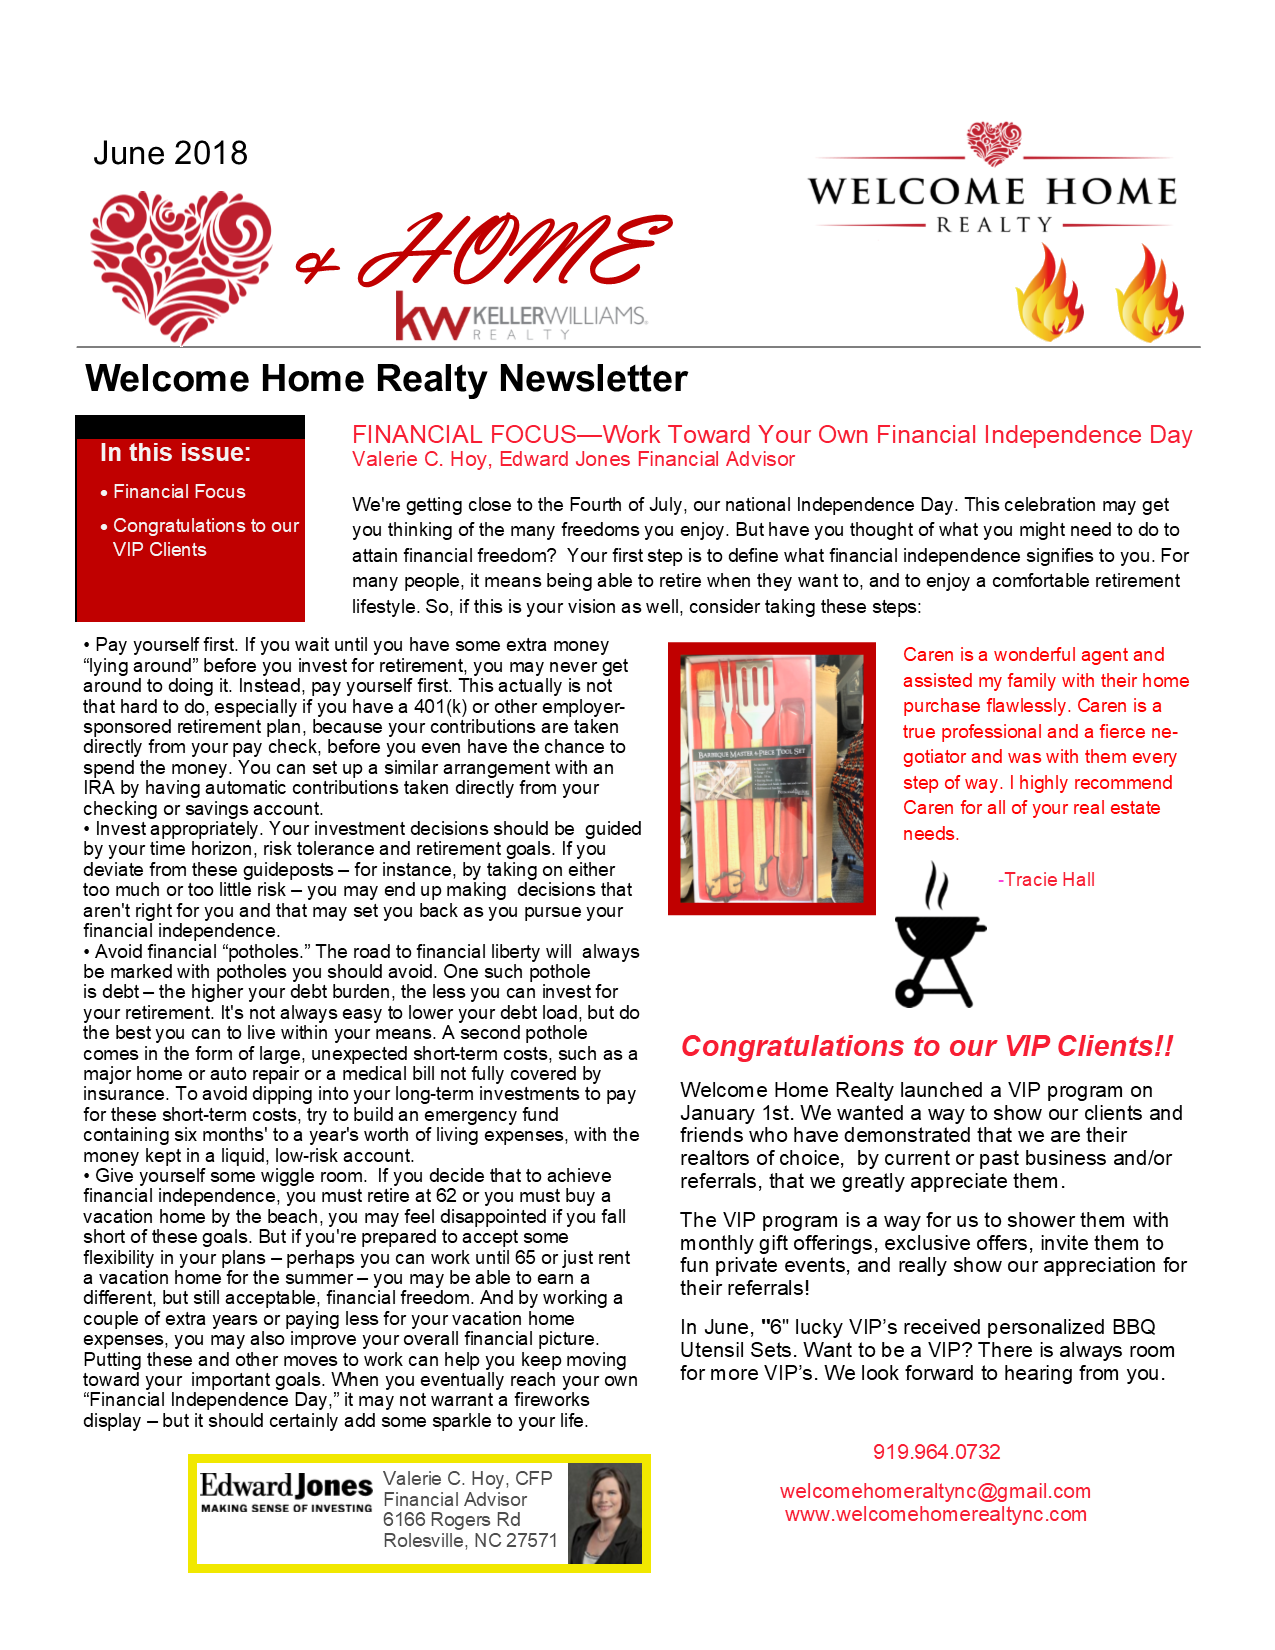 Heart & Home June 2018